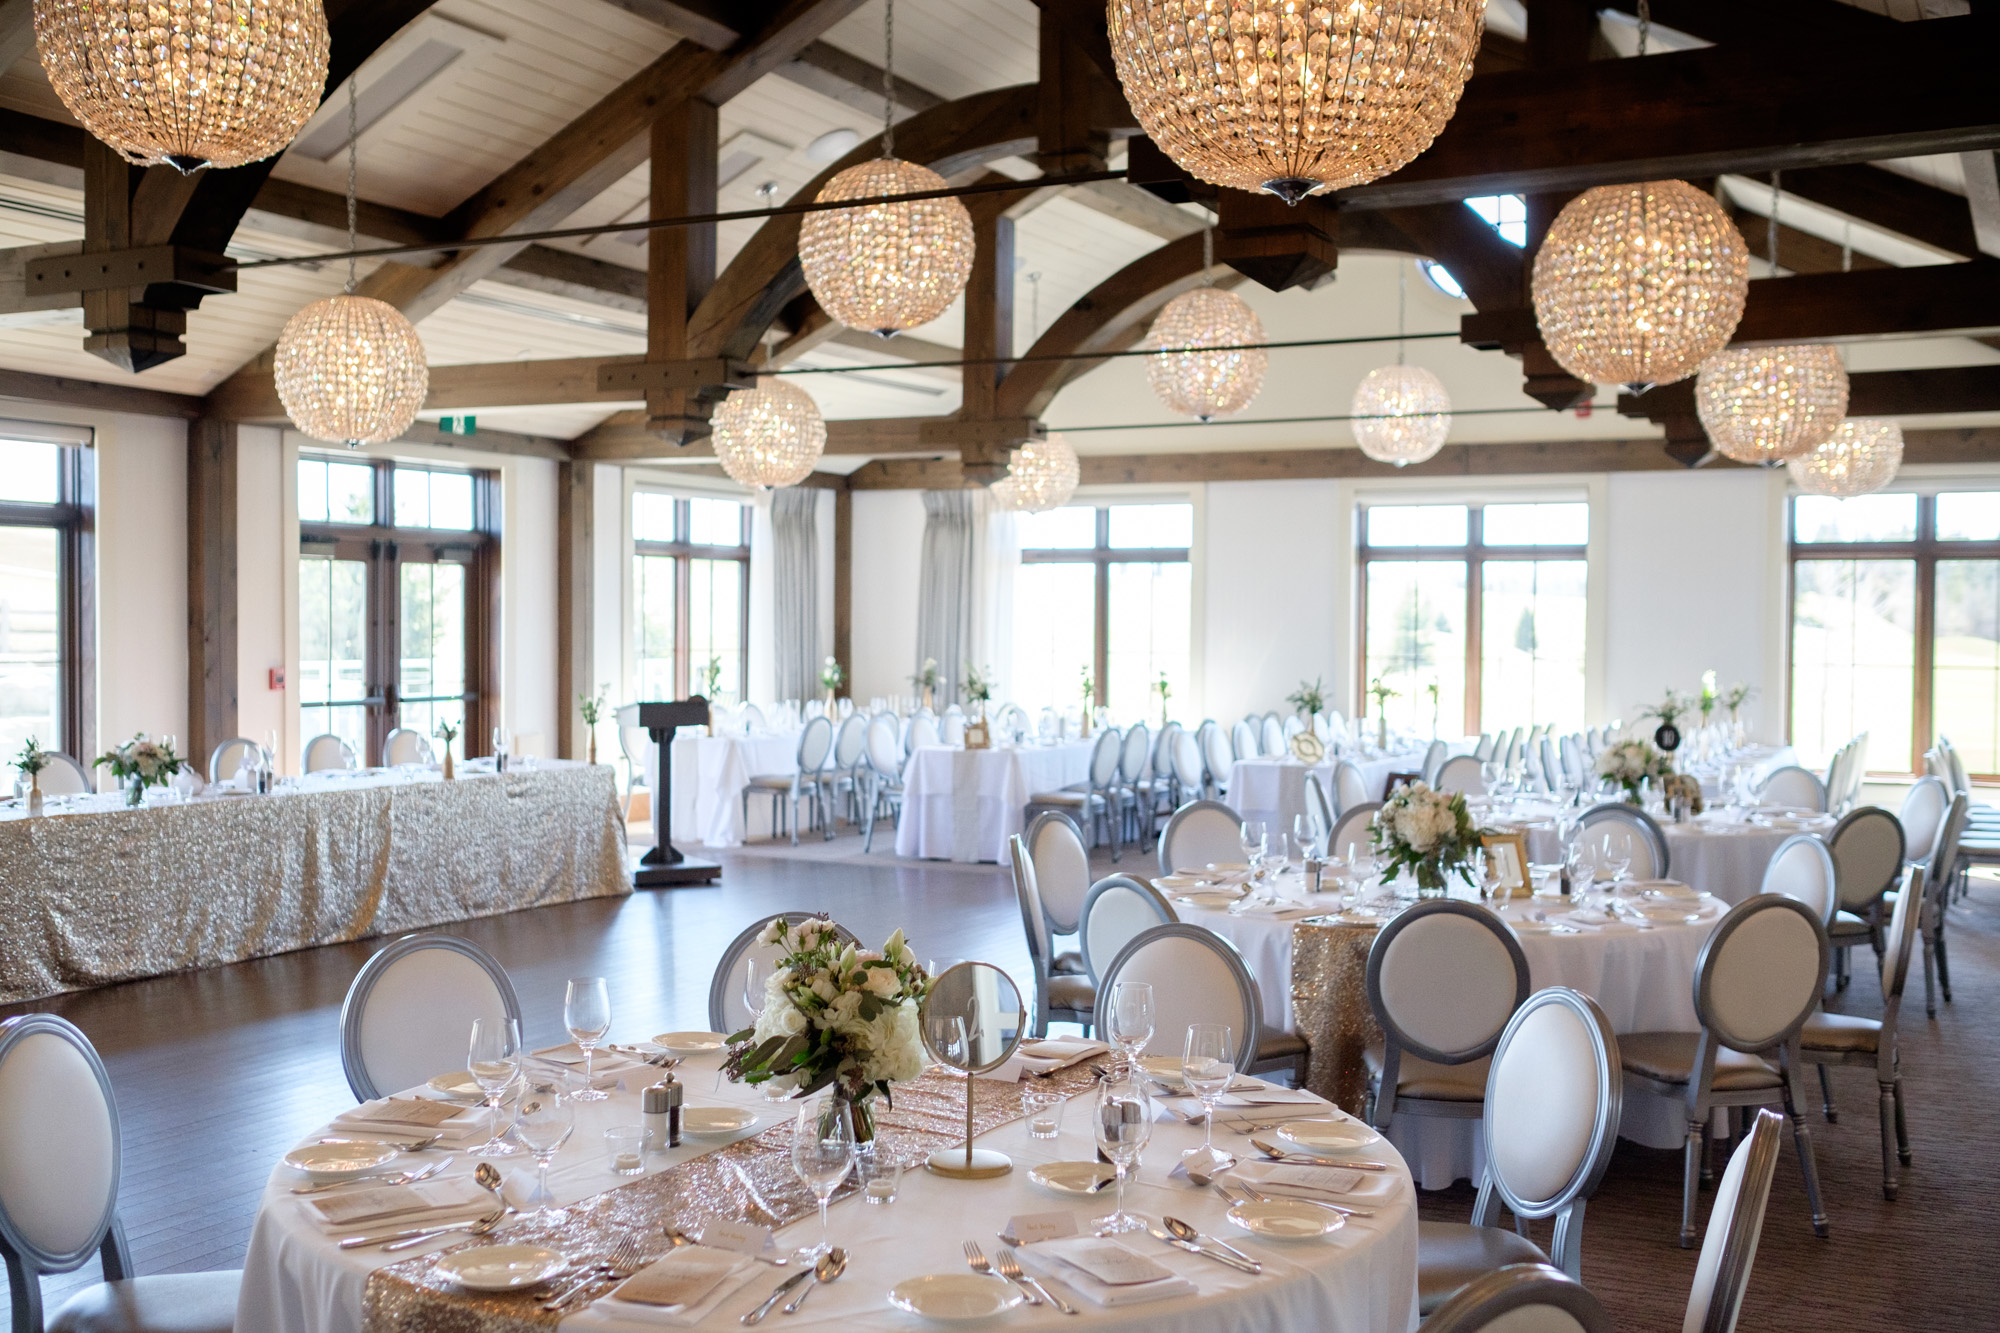 A detail photograph of the reception room at Sarah + Rob's wedding at Whistle Bear in Cambridge, Ontario.